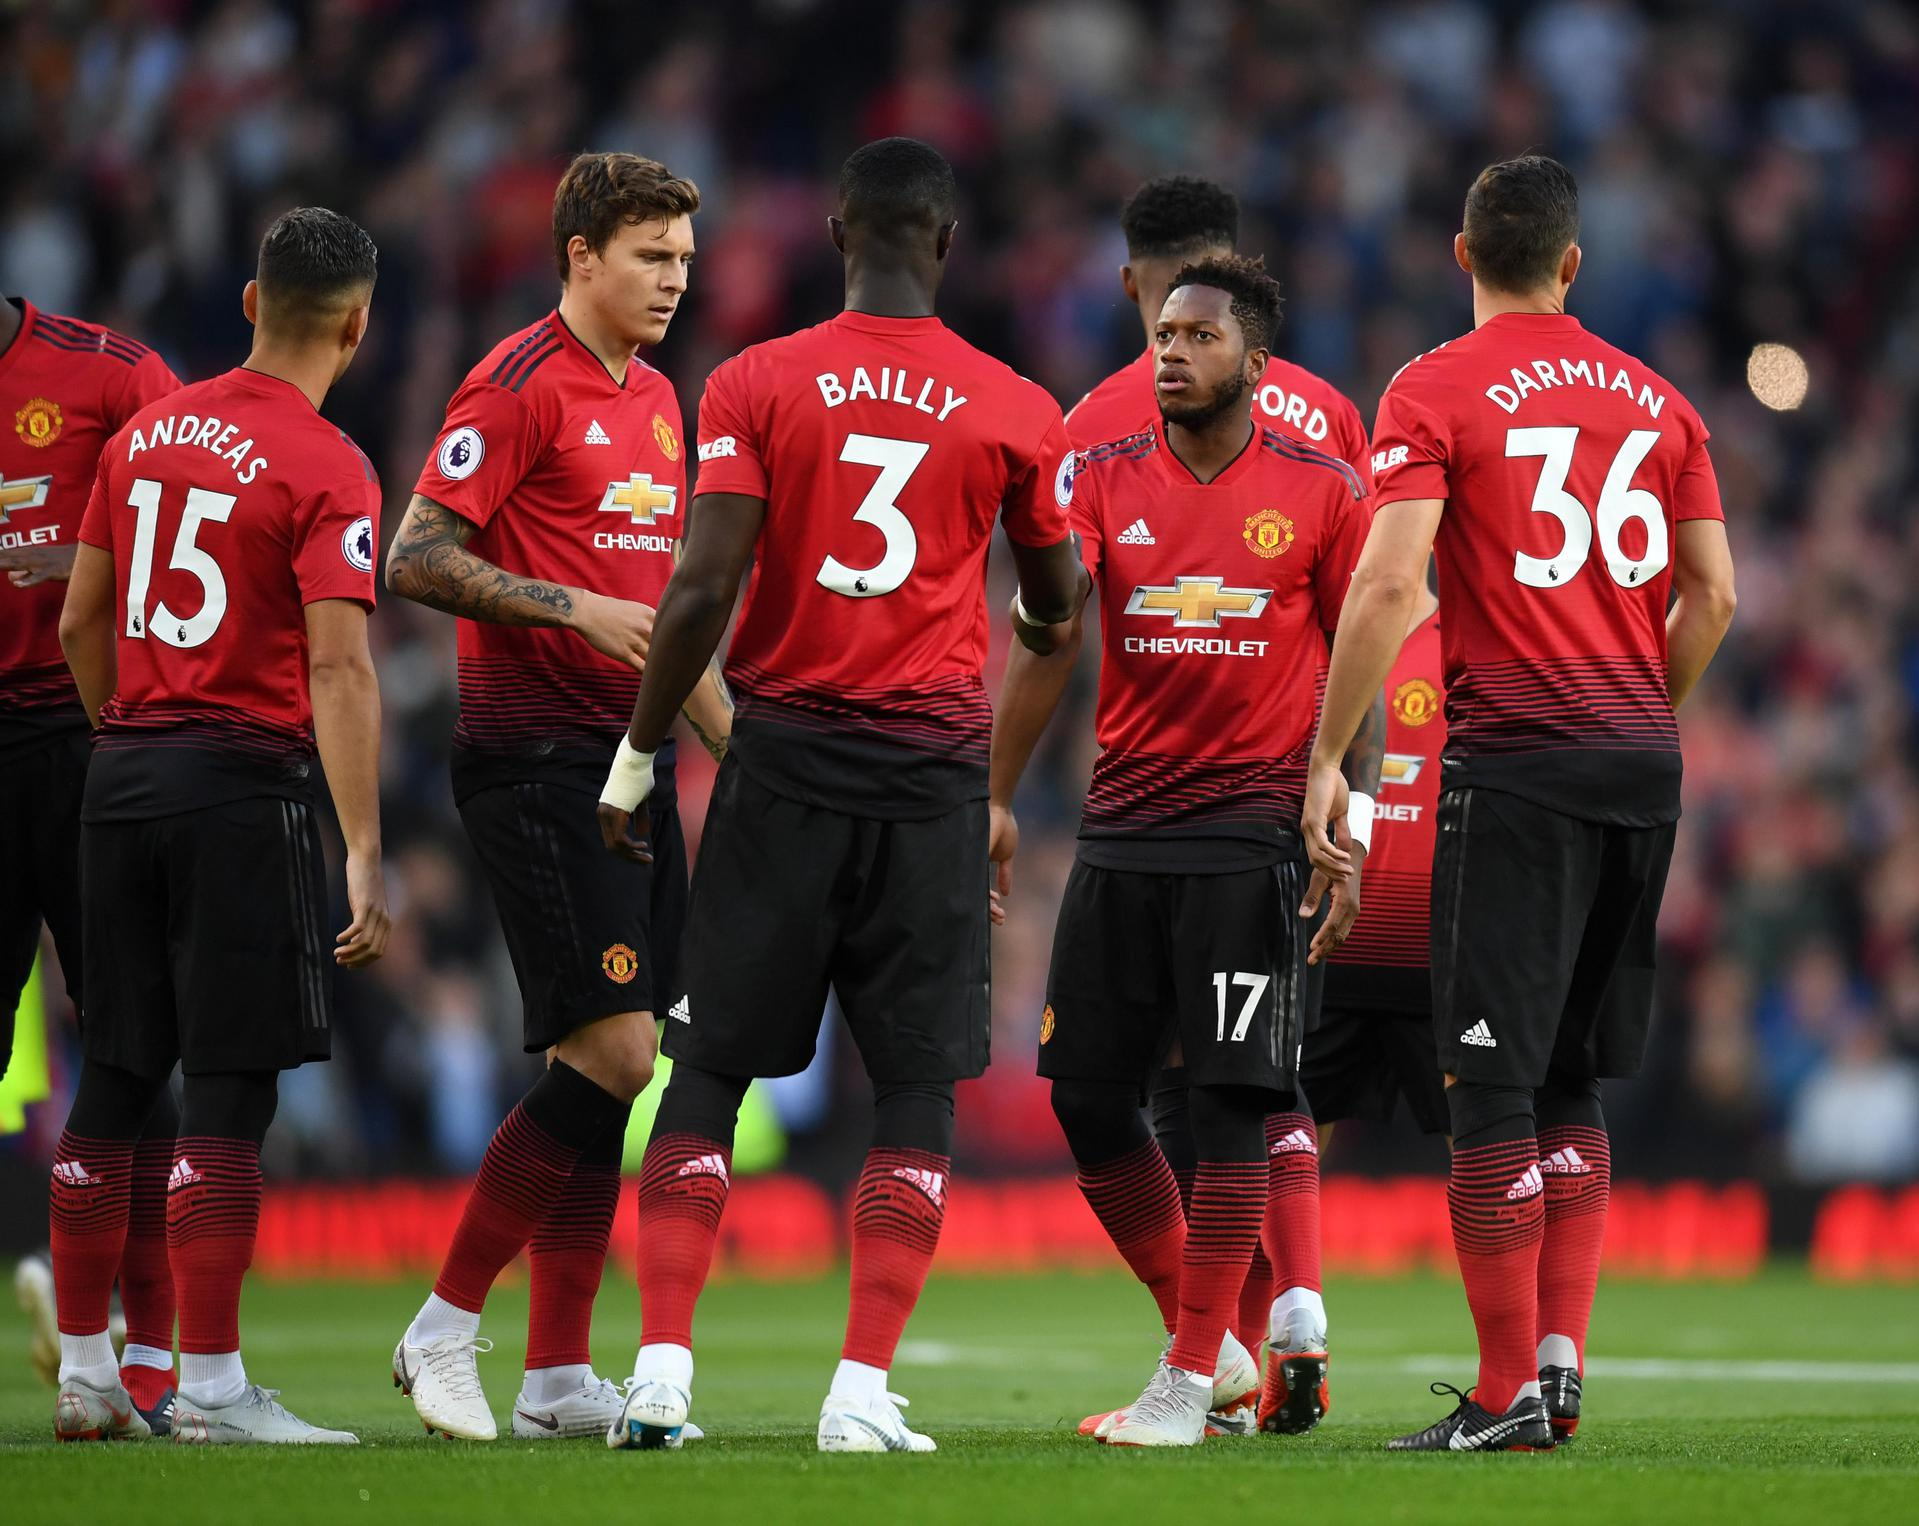 United players including Pereira, Lindelof, Bailly. Fred and Darmian get ready for a game at Old Trafford